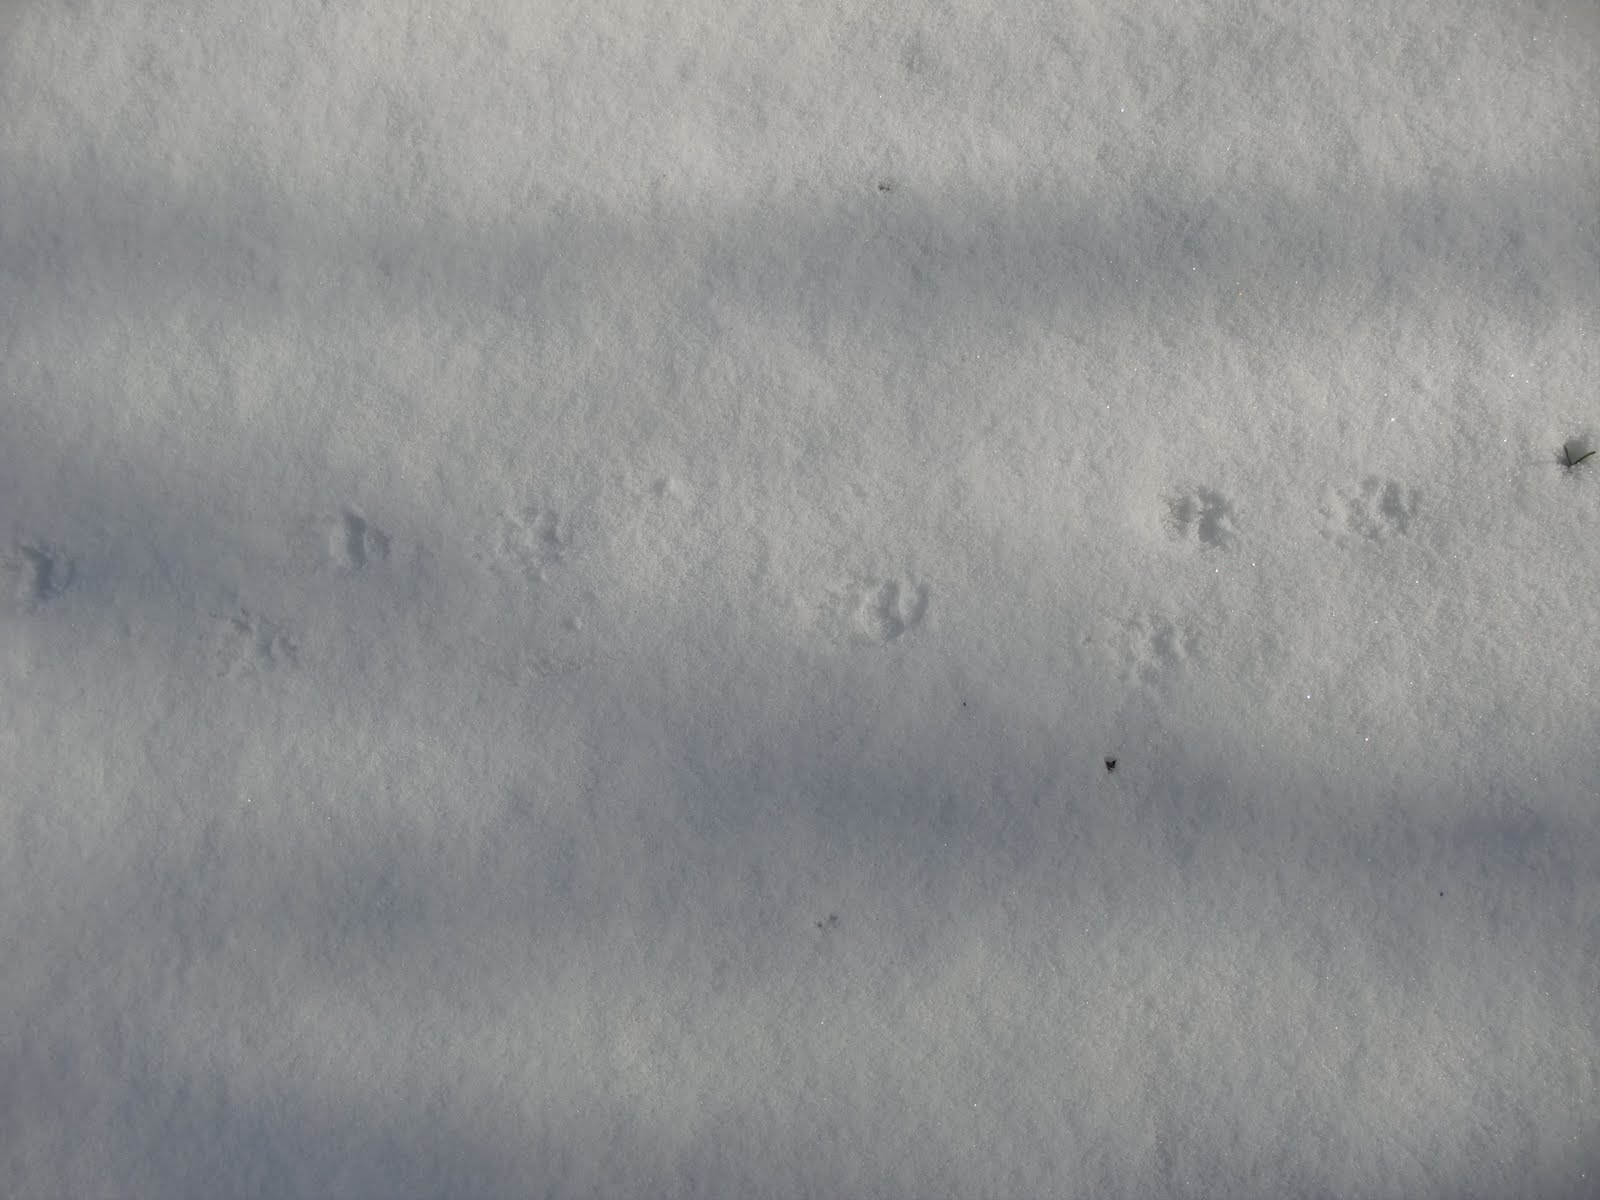 Skunk Tracks vs Raccoon Tracks Mice Bunnies Raccoon Skunk